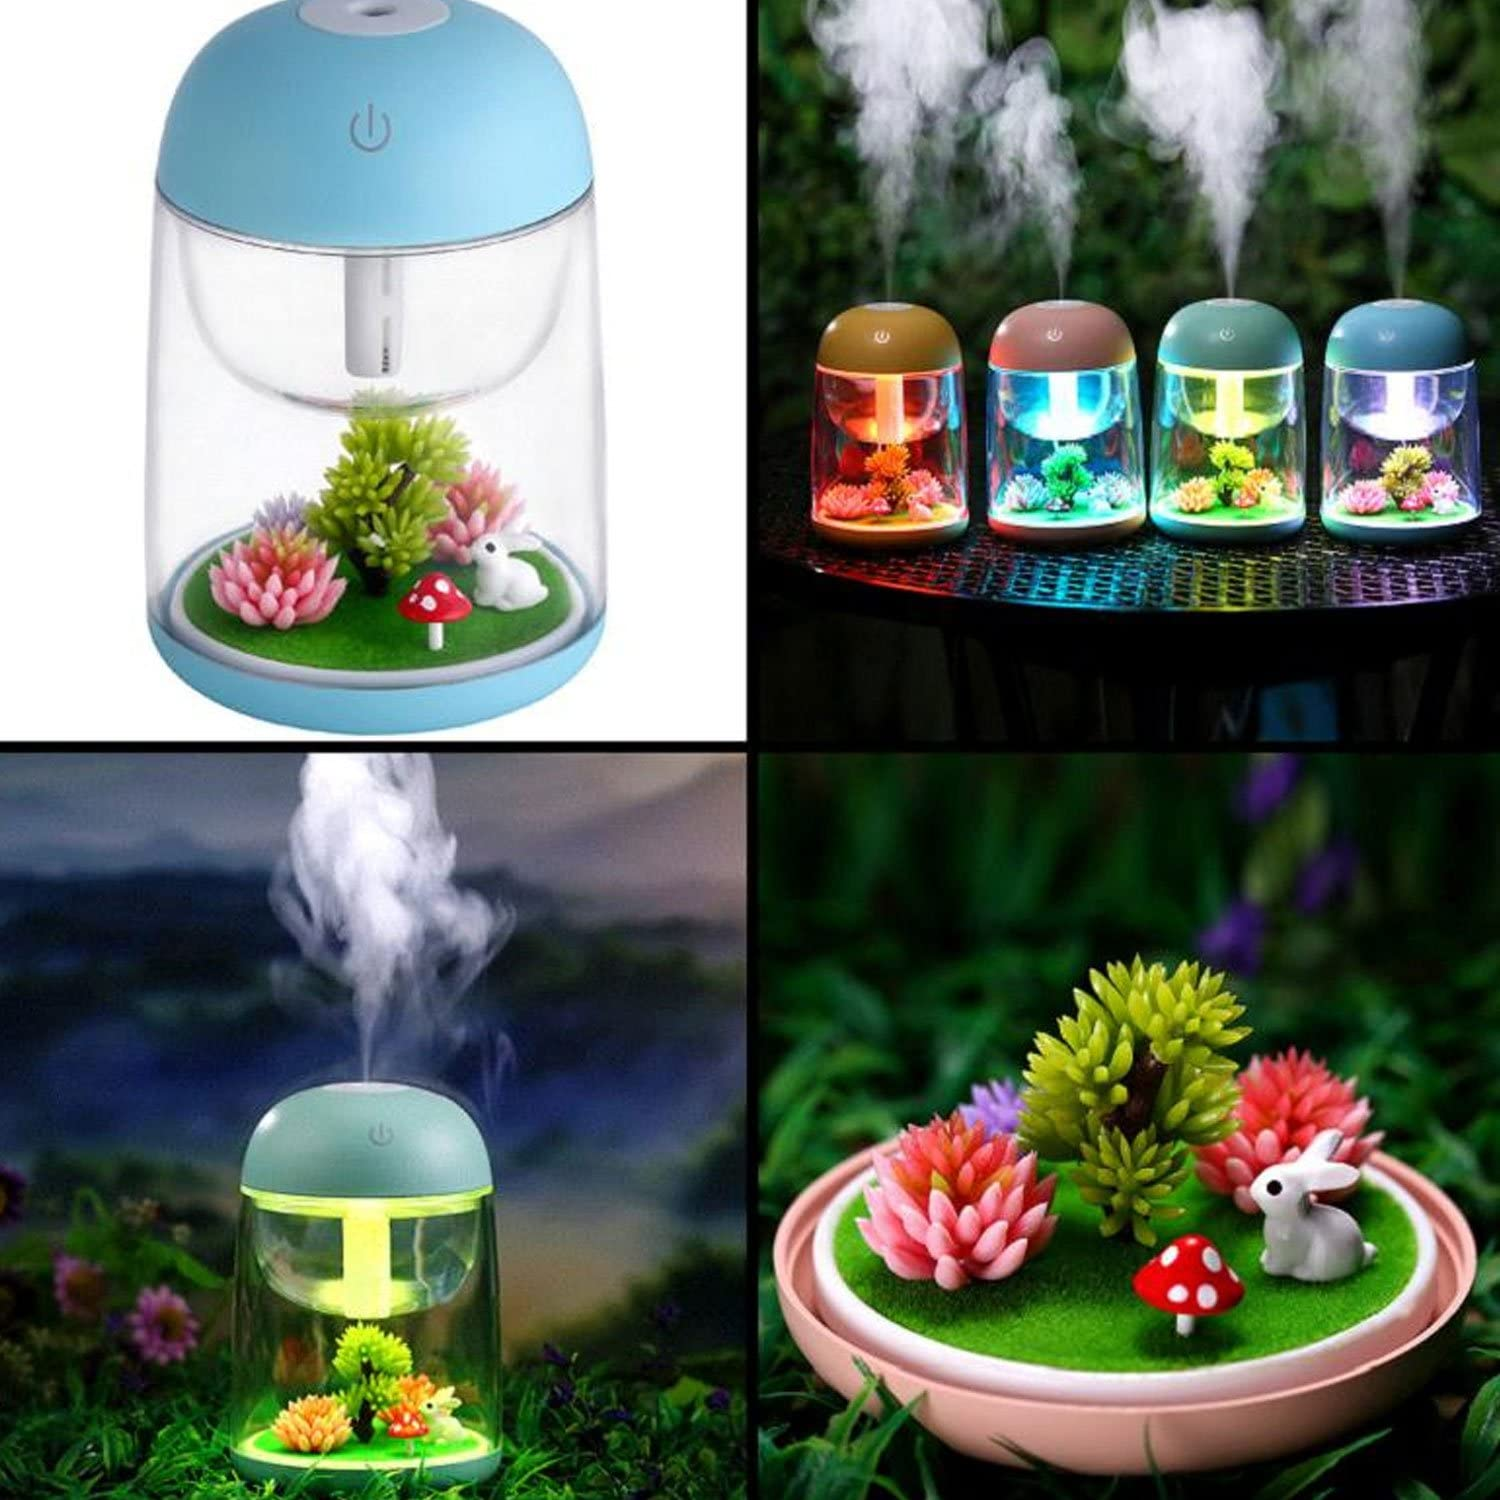 Air Humidifier with Micro LED Landscape Adjustable Mist Mode green Waterless Auto Shut-off,for Various Places Like Bedroom,Office,Car